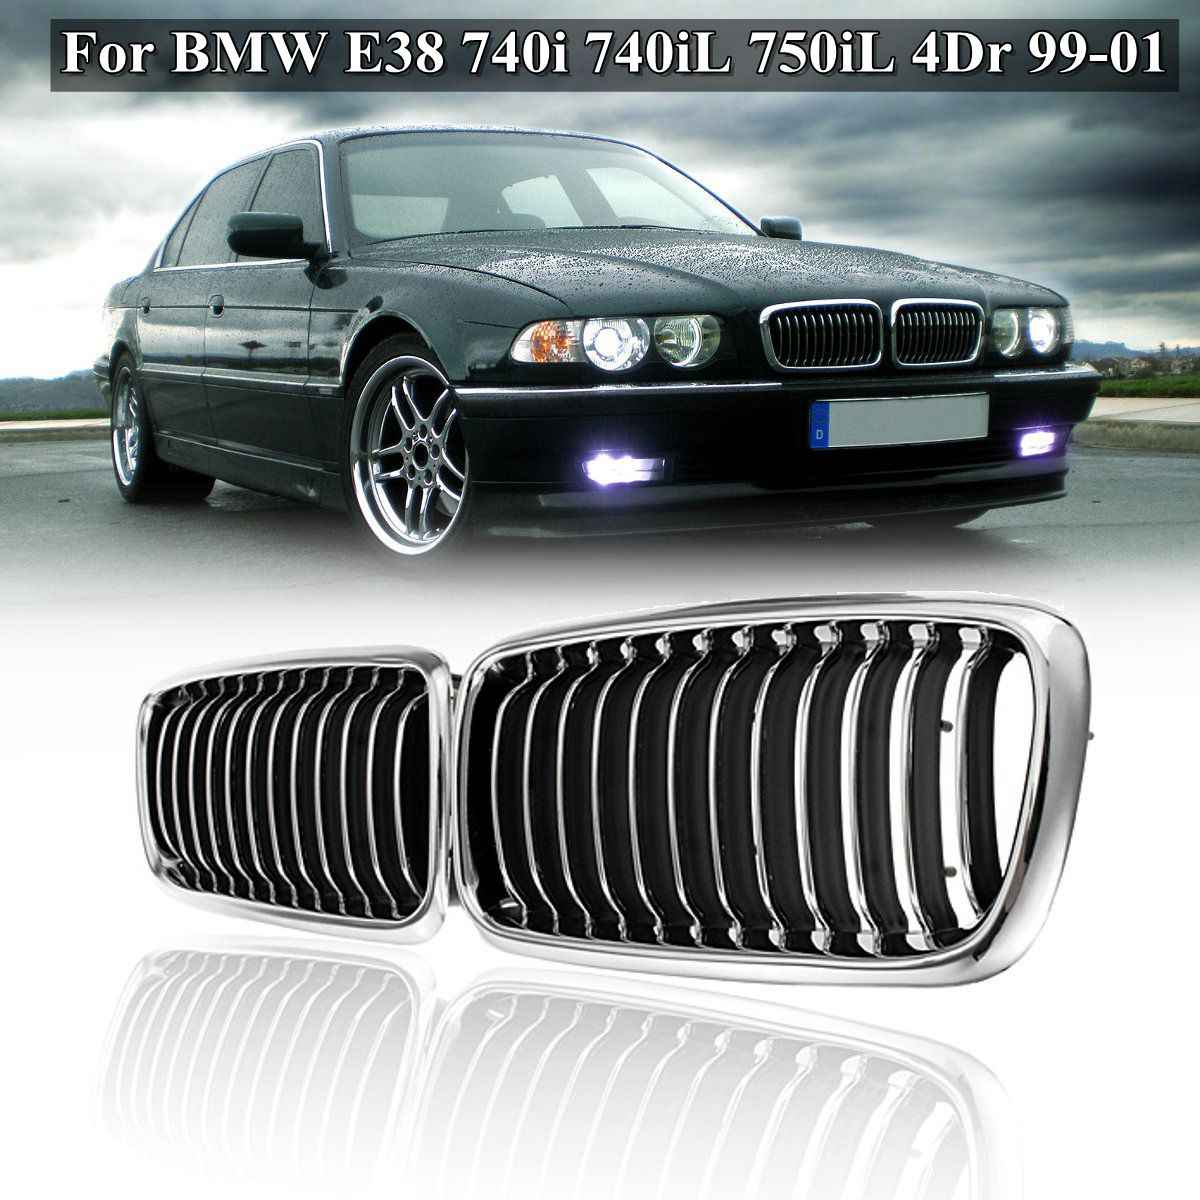 hight resolution of pair matte black chrome front grill grille for bmw e38 740i 740il 750il 4dr 1999 2000